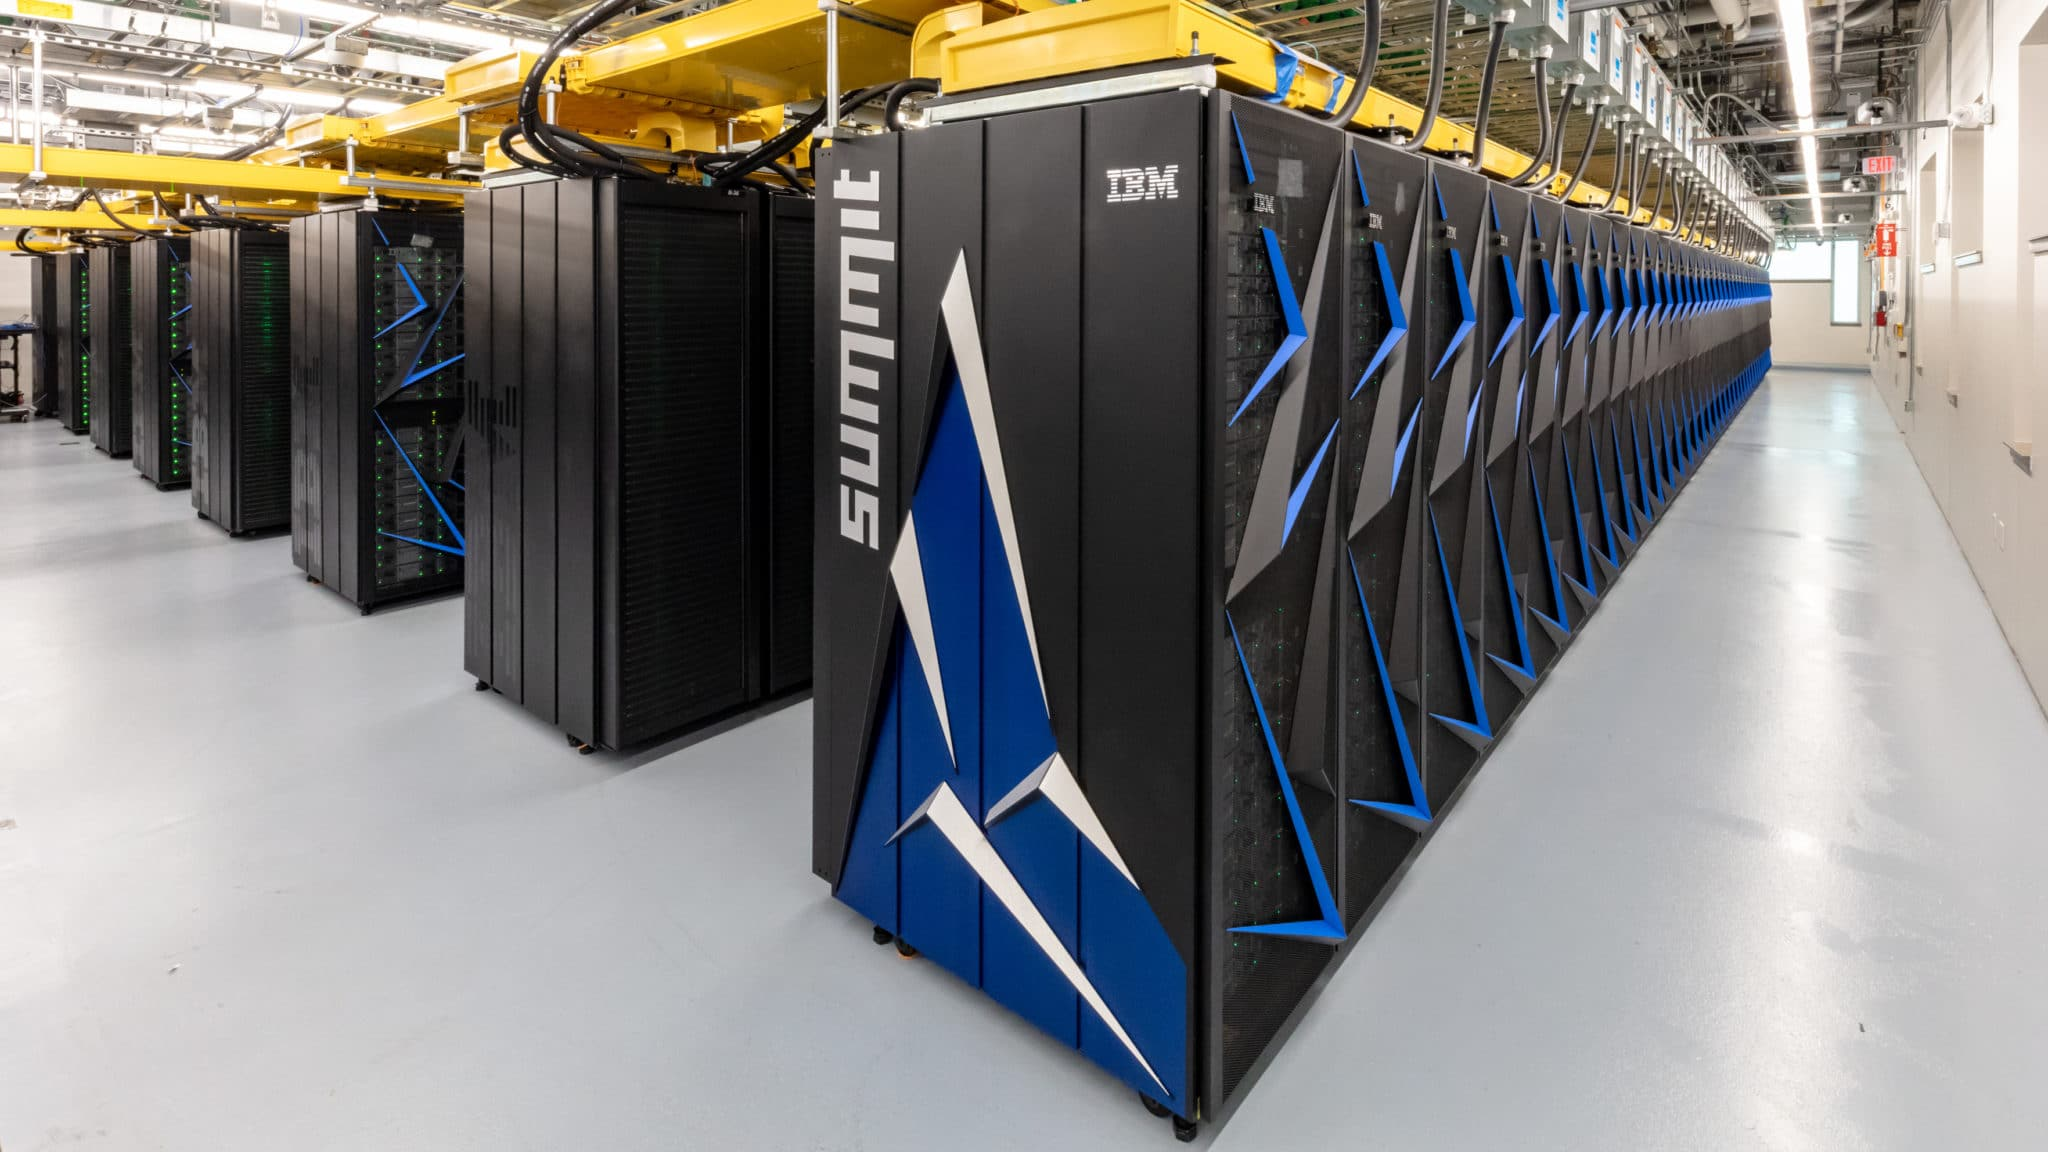 TECHMED – Un supercomputer per trovare la cura al coronavirus